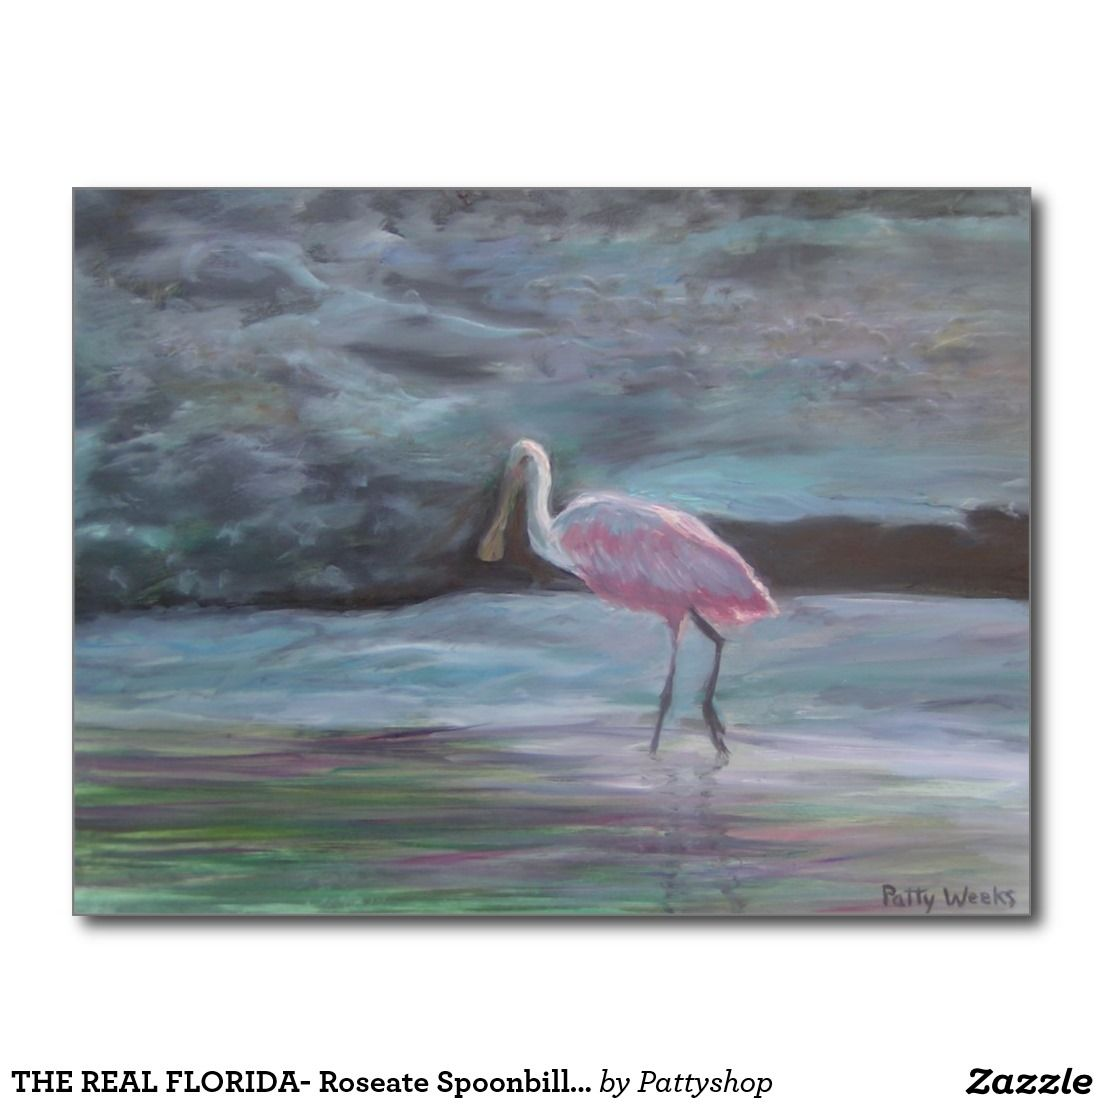 THE REAL FLORIDA- Roseate Spoonbill Postcard